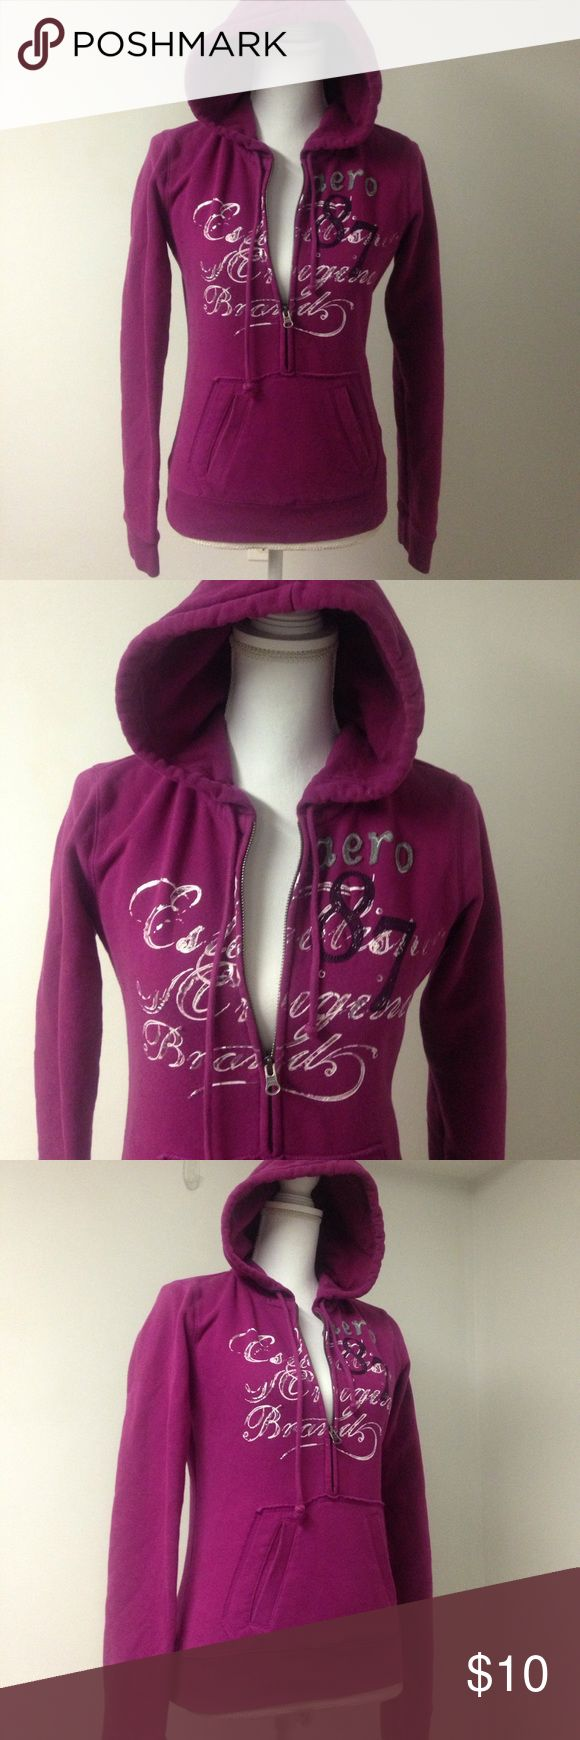 Aeropostale Purple Hoodie NWOT New without tags. The tags were removed but it wasn't used. Very comfortable great interior. Made with 70% cotton and 30% polyester. Half from zipper and kangaroo pocket. Aeropostale Tops Sweatshirts & Hoodies